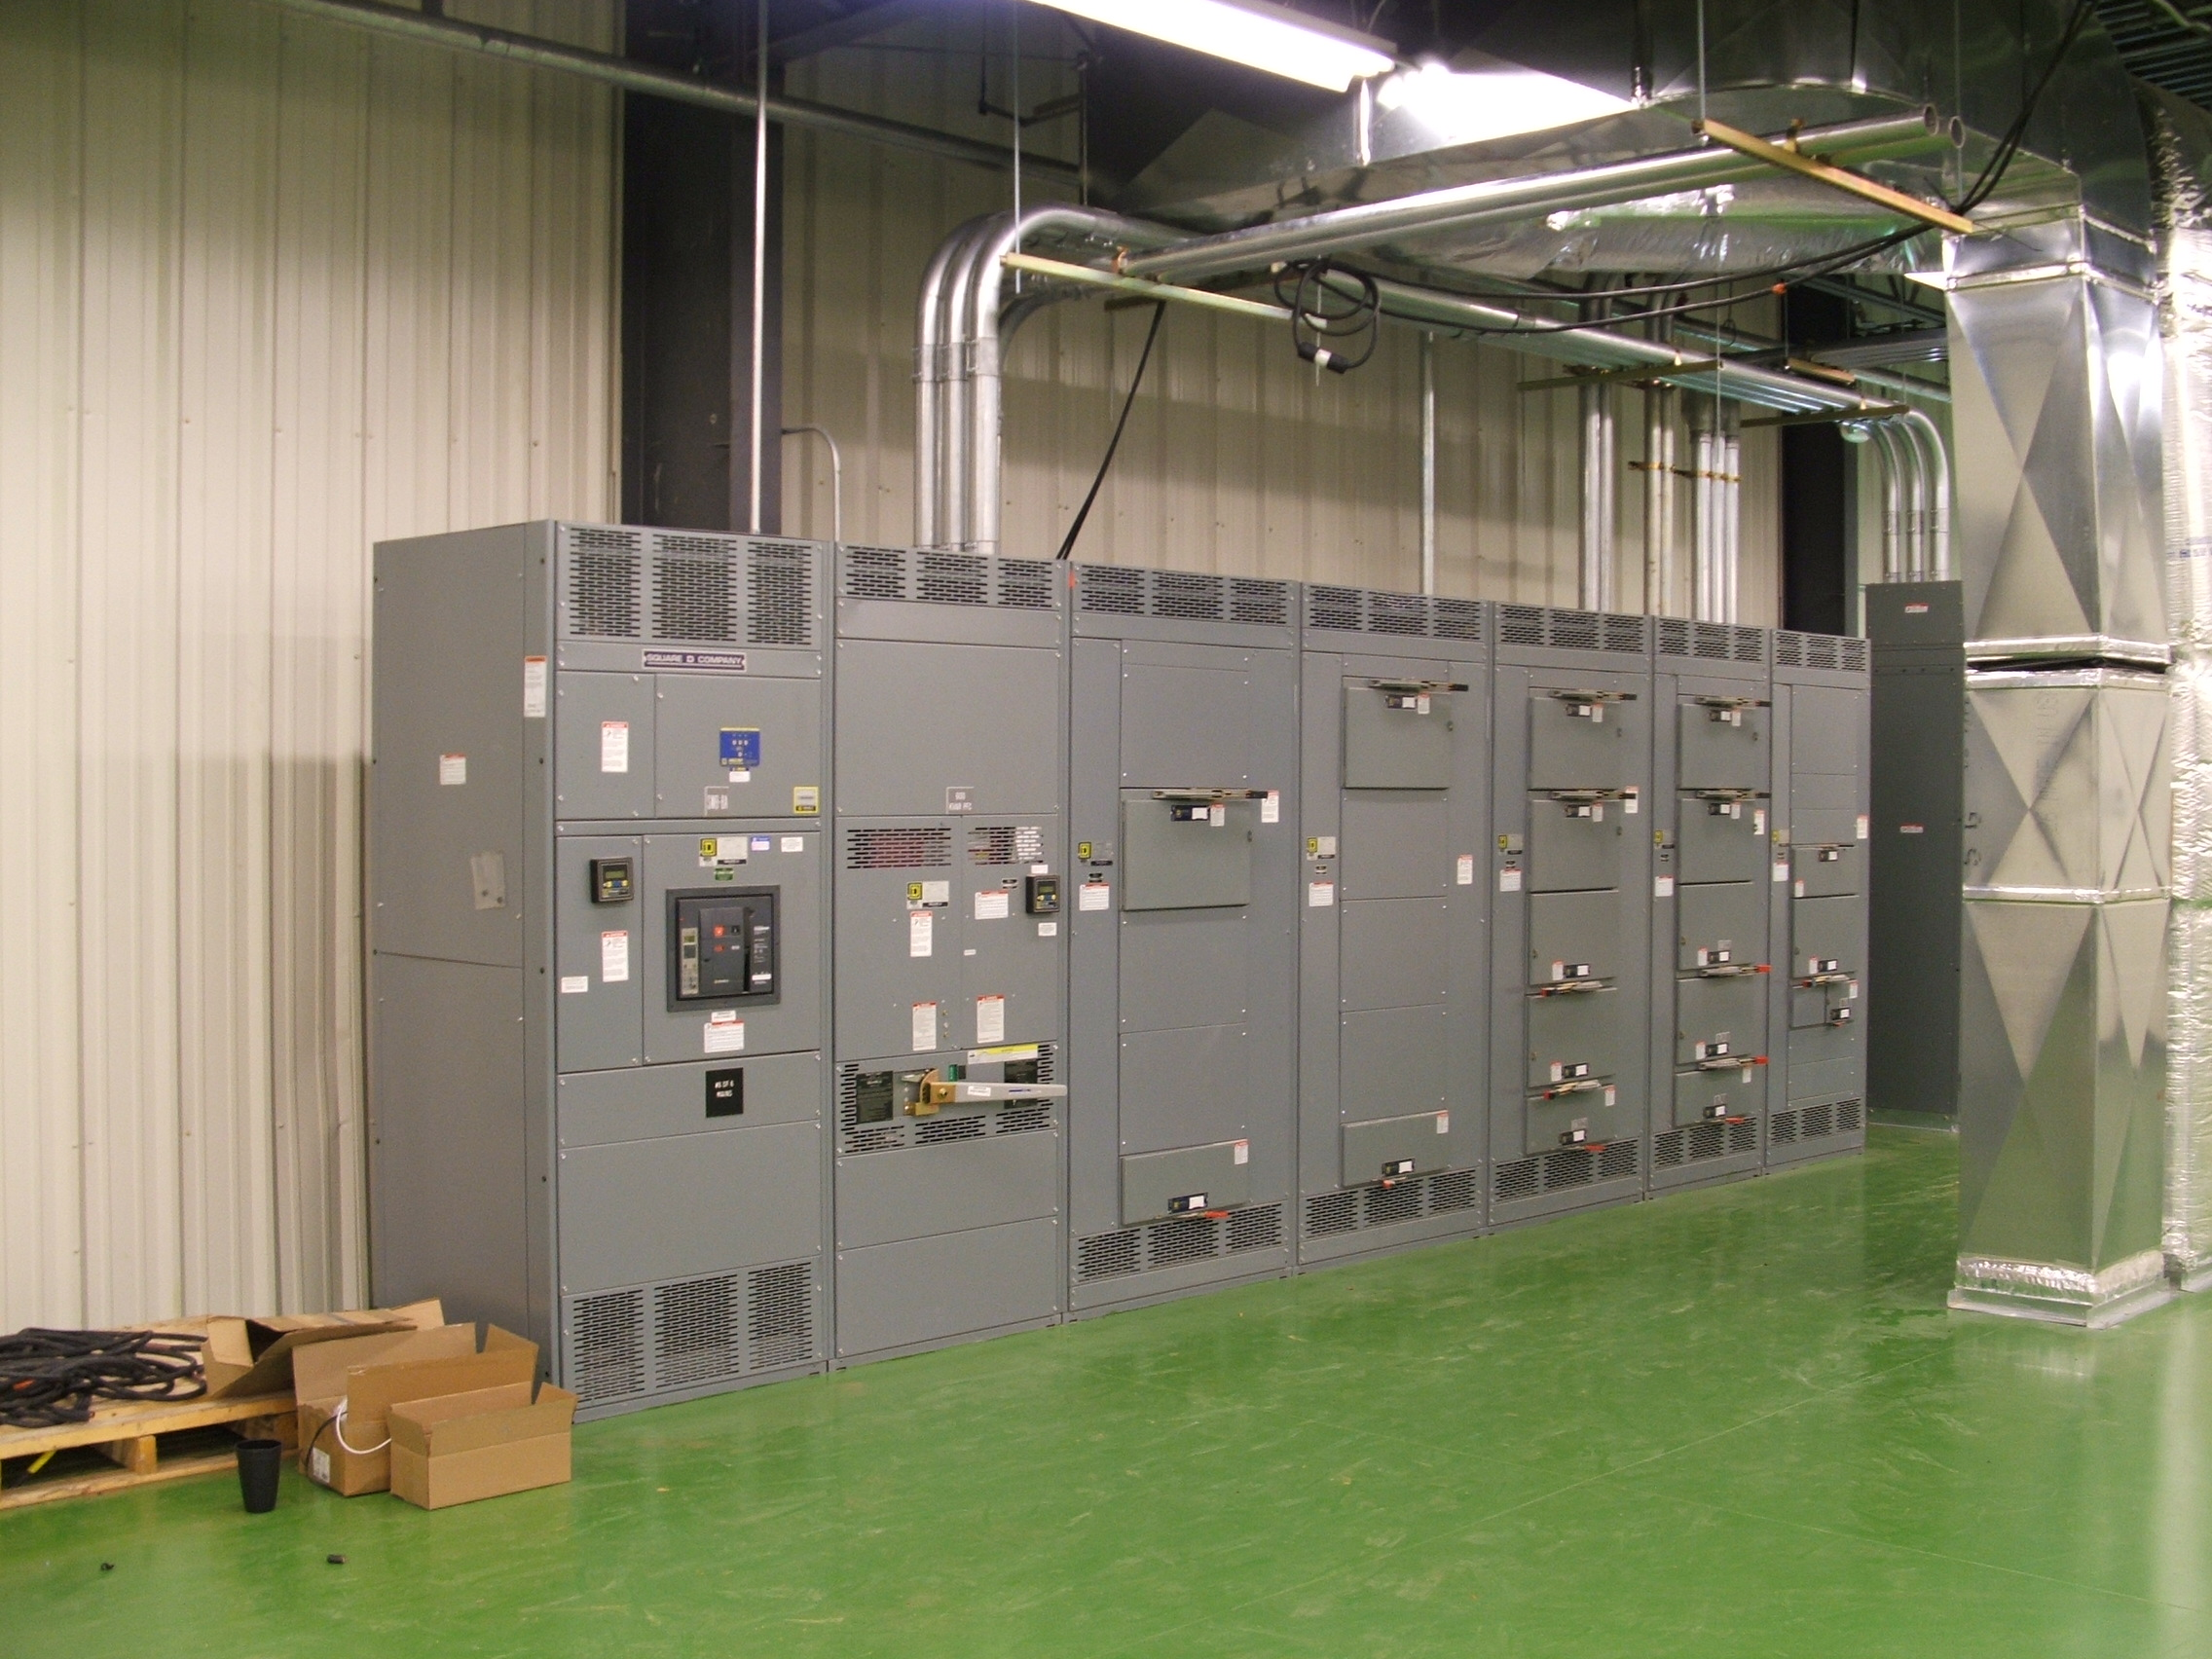 DTR Electrical Panel Image